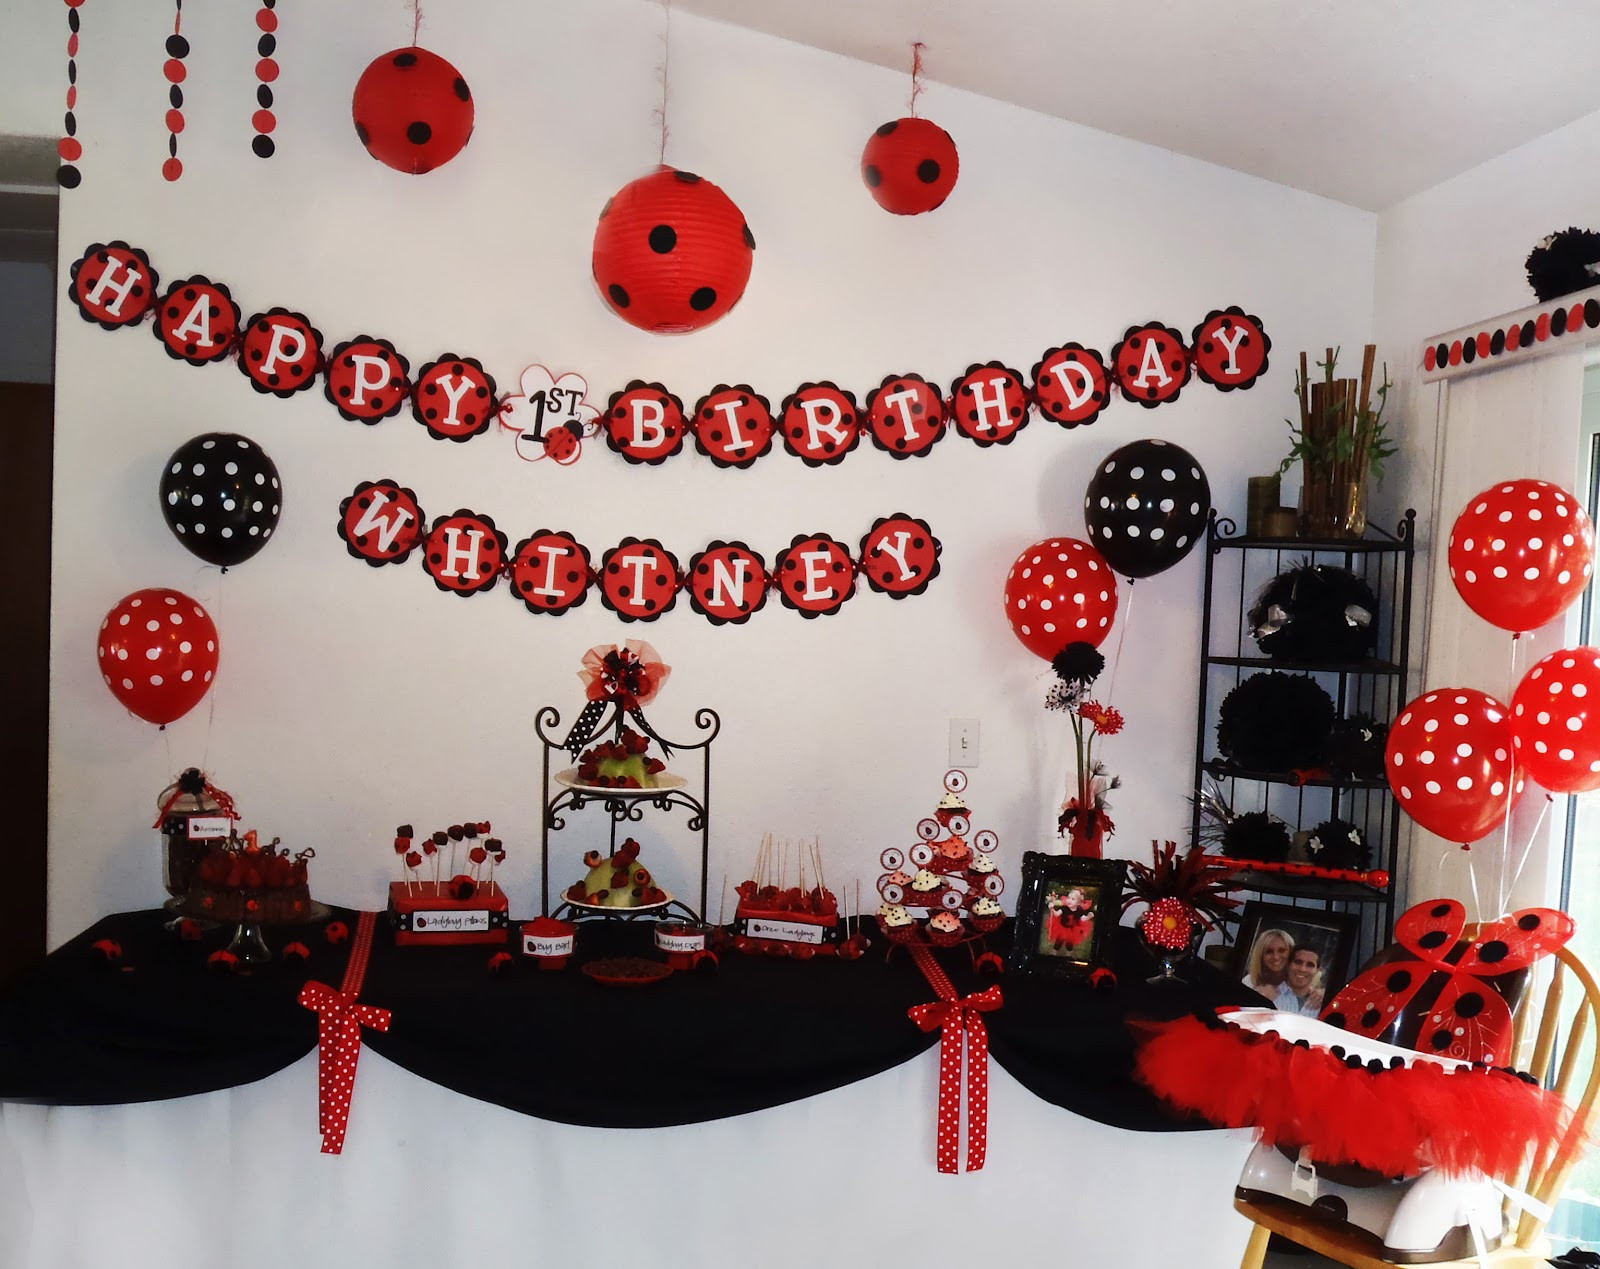 Best ideas about Ladybug Birthday Party . Save or Pin Sutherlands 2008 2012 Whitney s Ladybug Birthday Party Now.